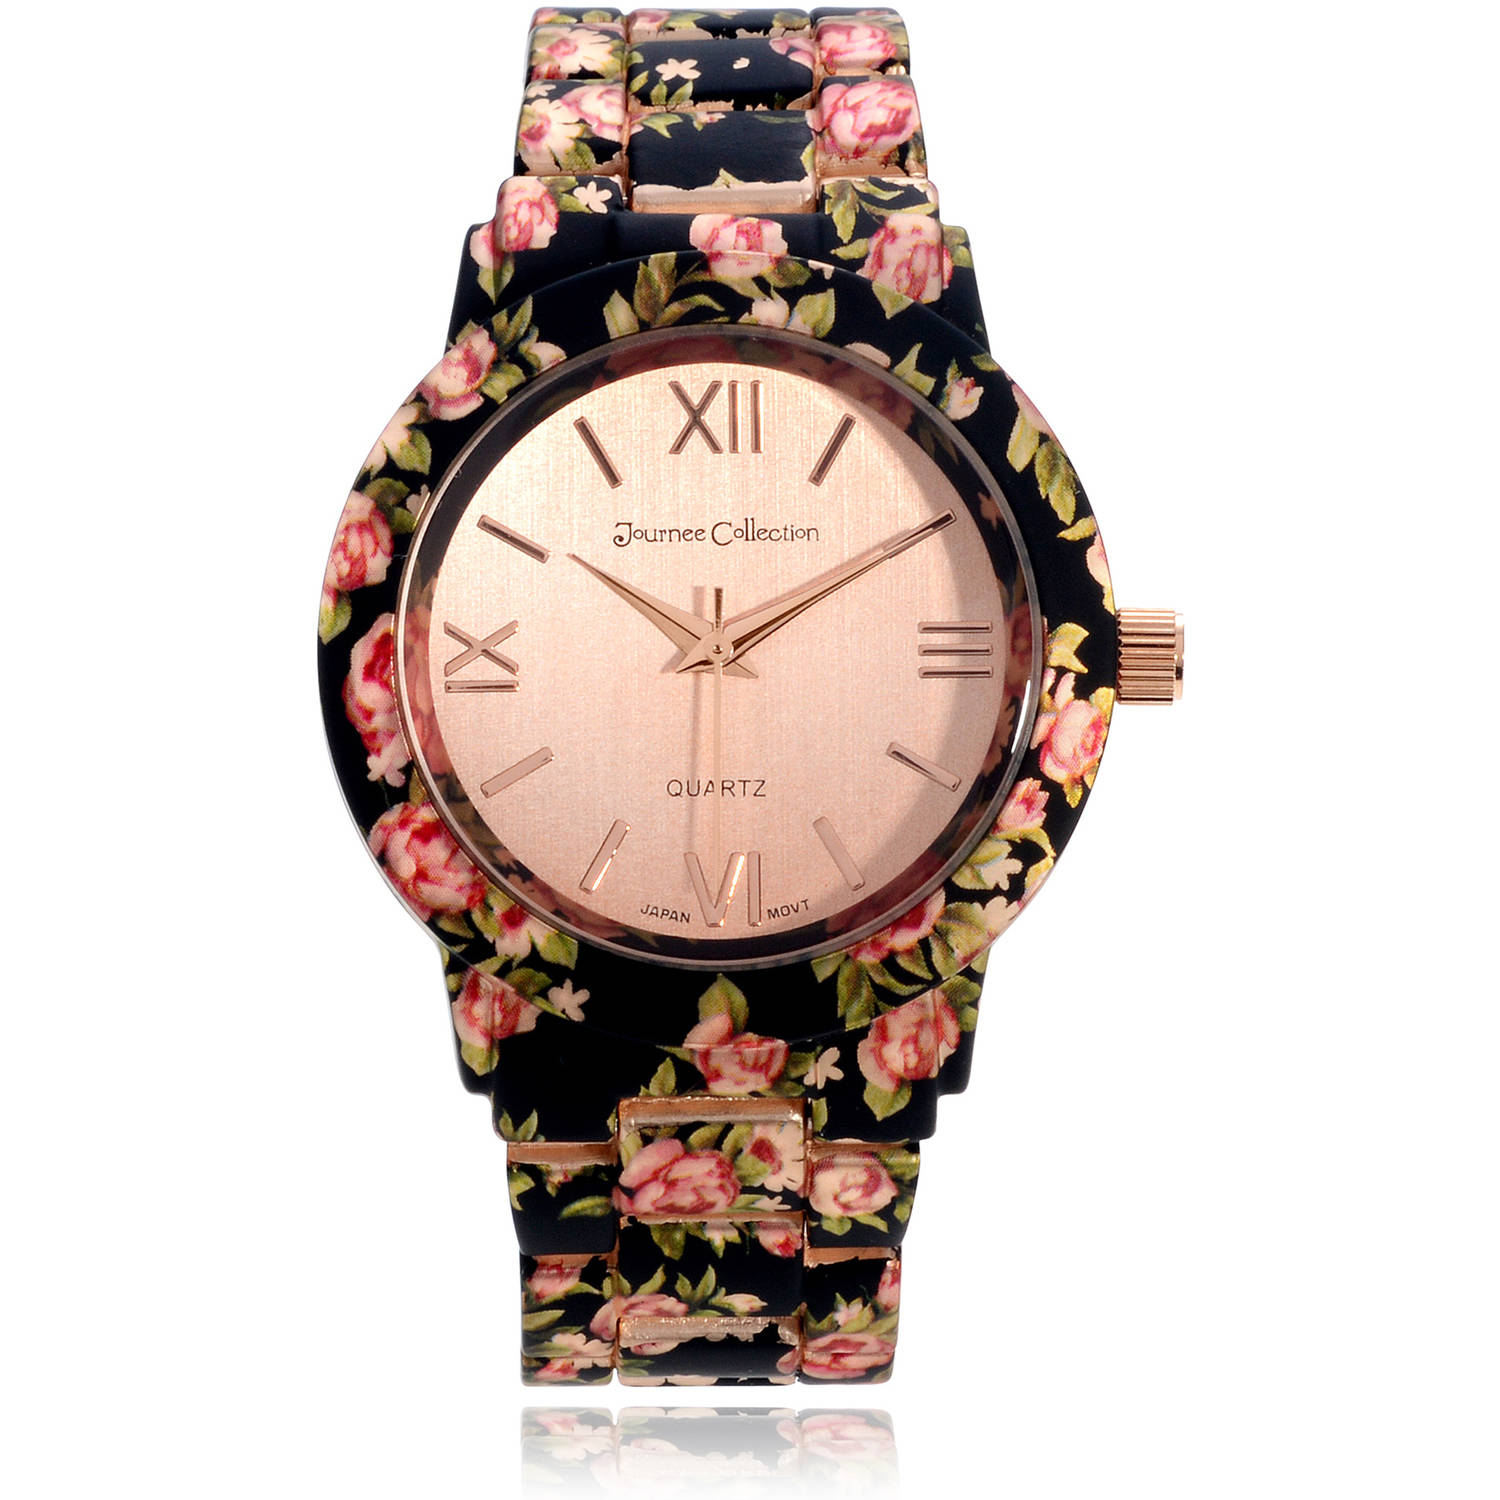 Journee Collection Women's Stainless Steel Floral Prink Link Fashion Watch, Black